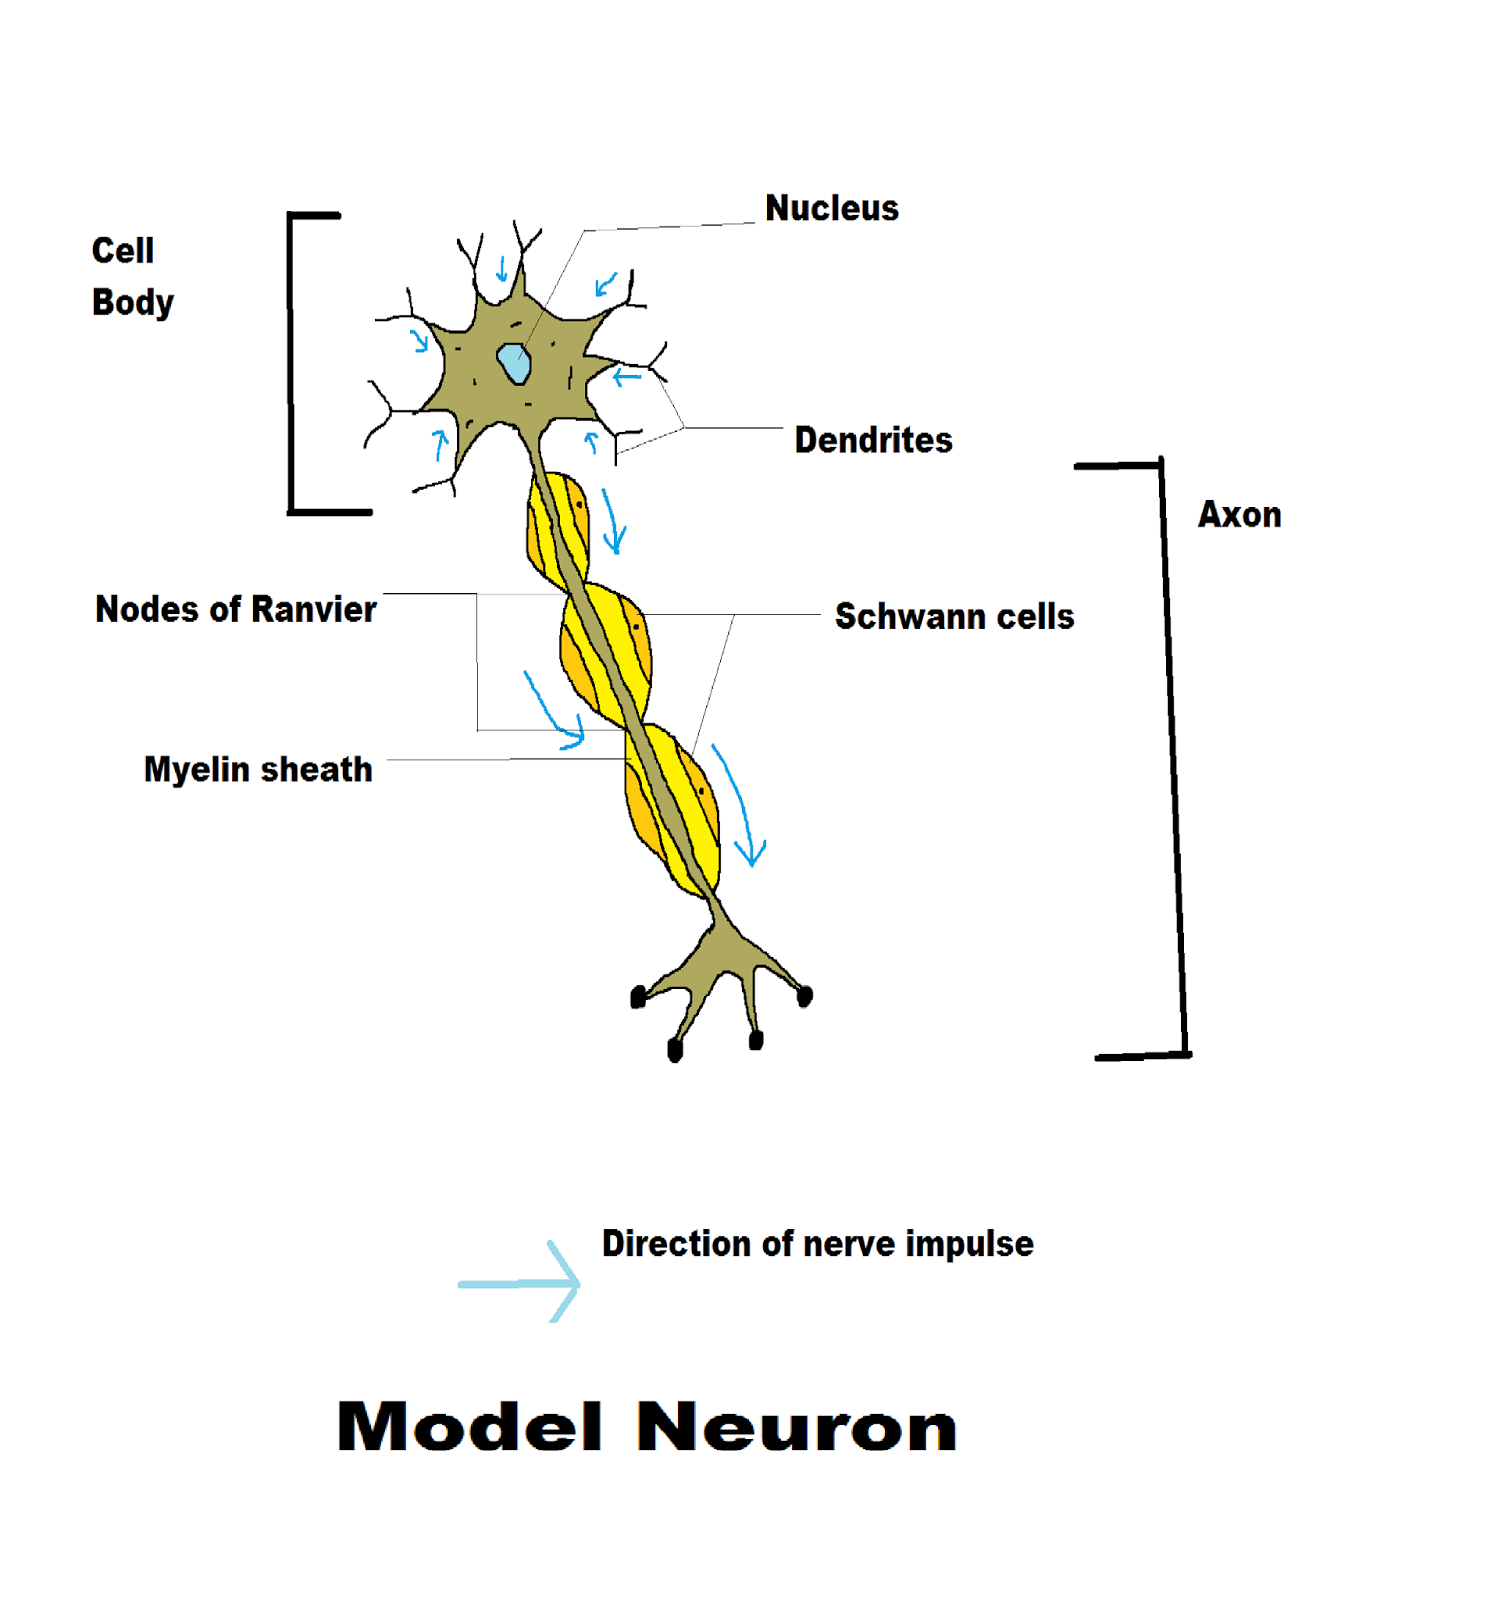 In Neuron Cell Diagram